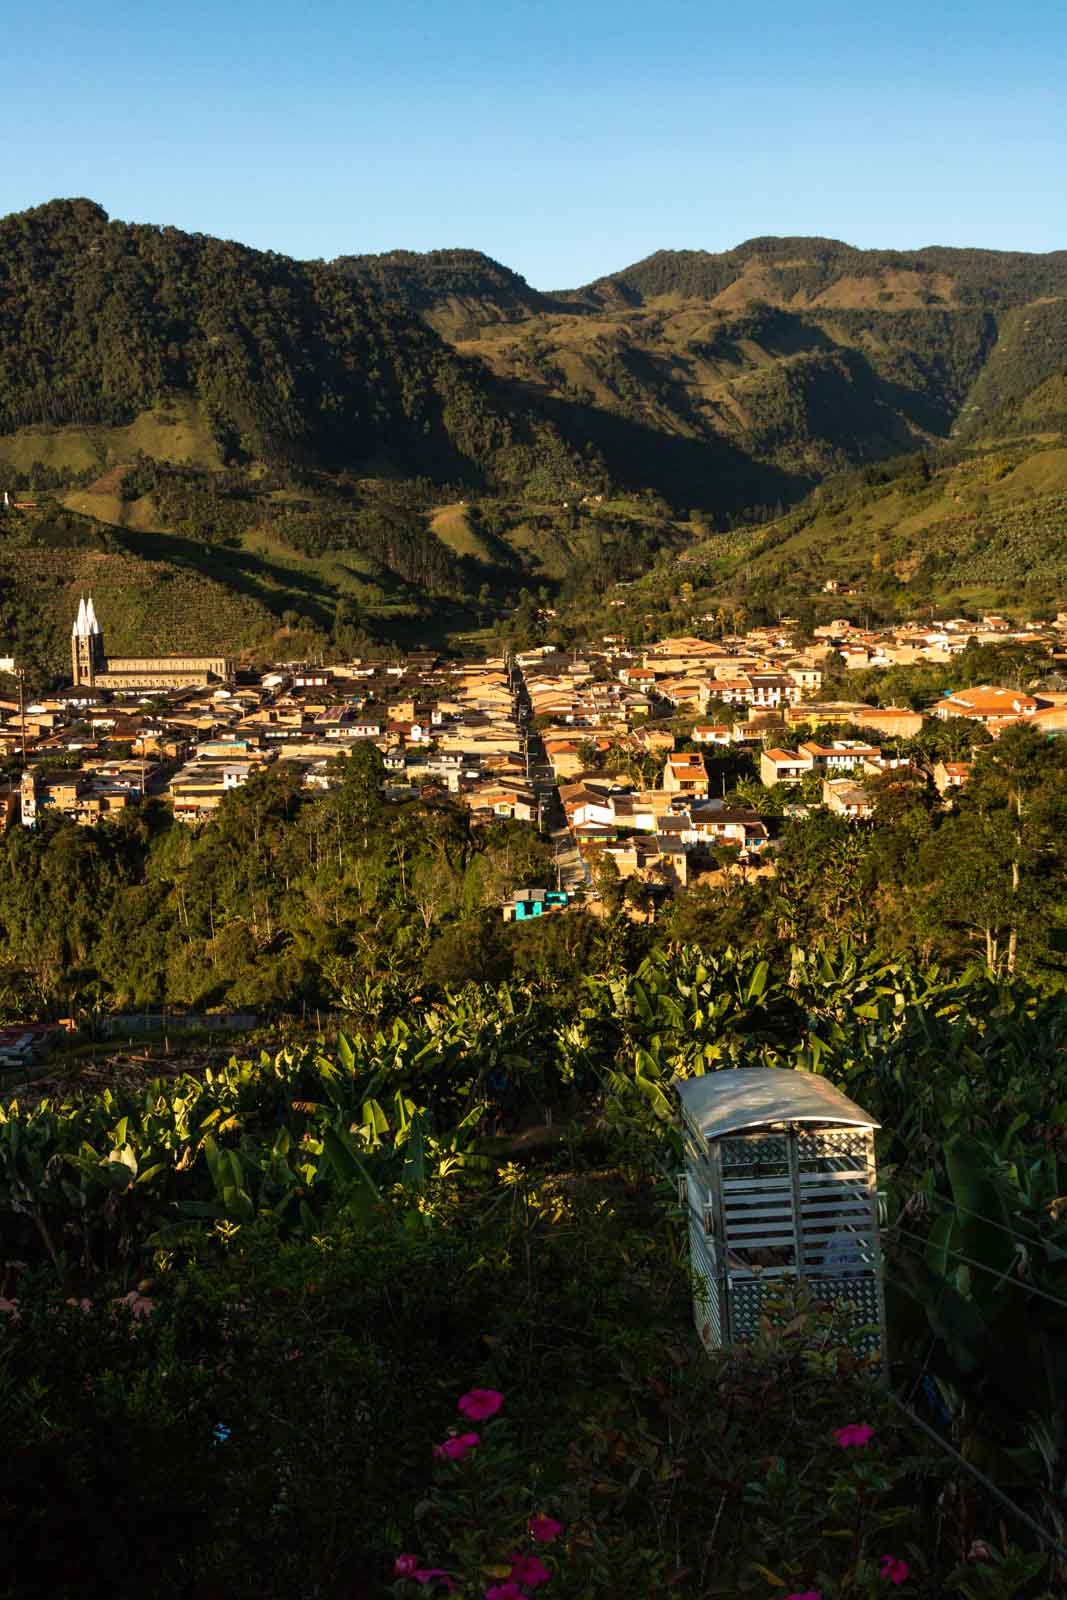 The view from the La Garrucha cablecar in Jardin, Colombia.